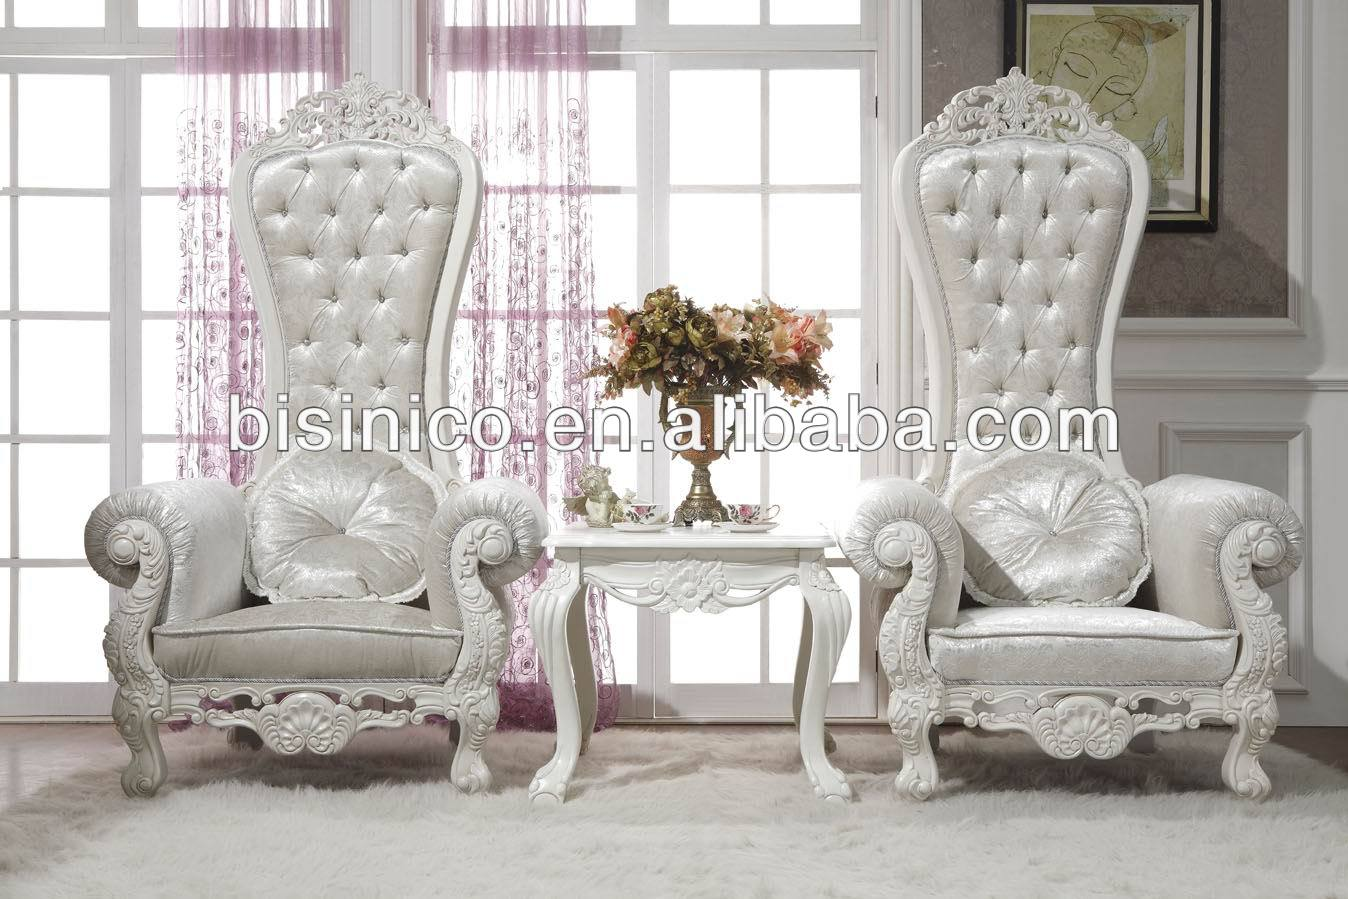 Luxury Living Room Furniture,Elegant Royal Queen Chairs Set - Buy ...